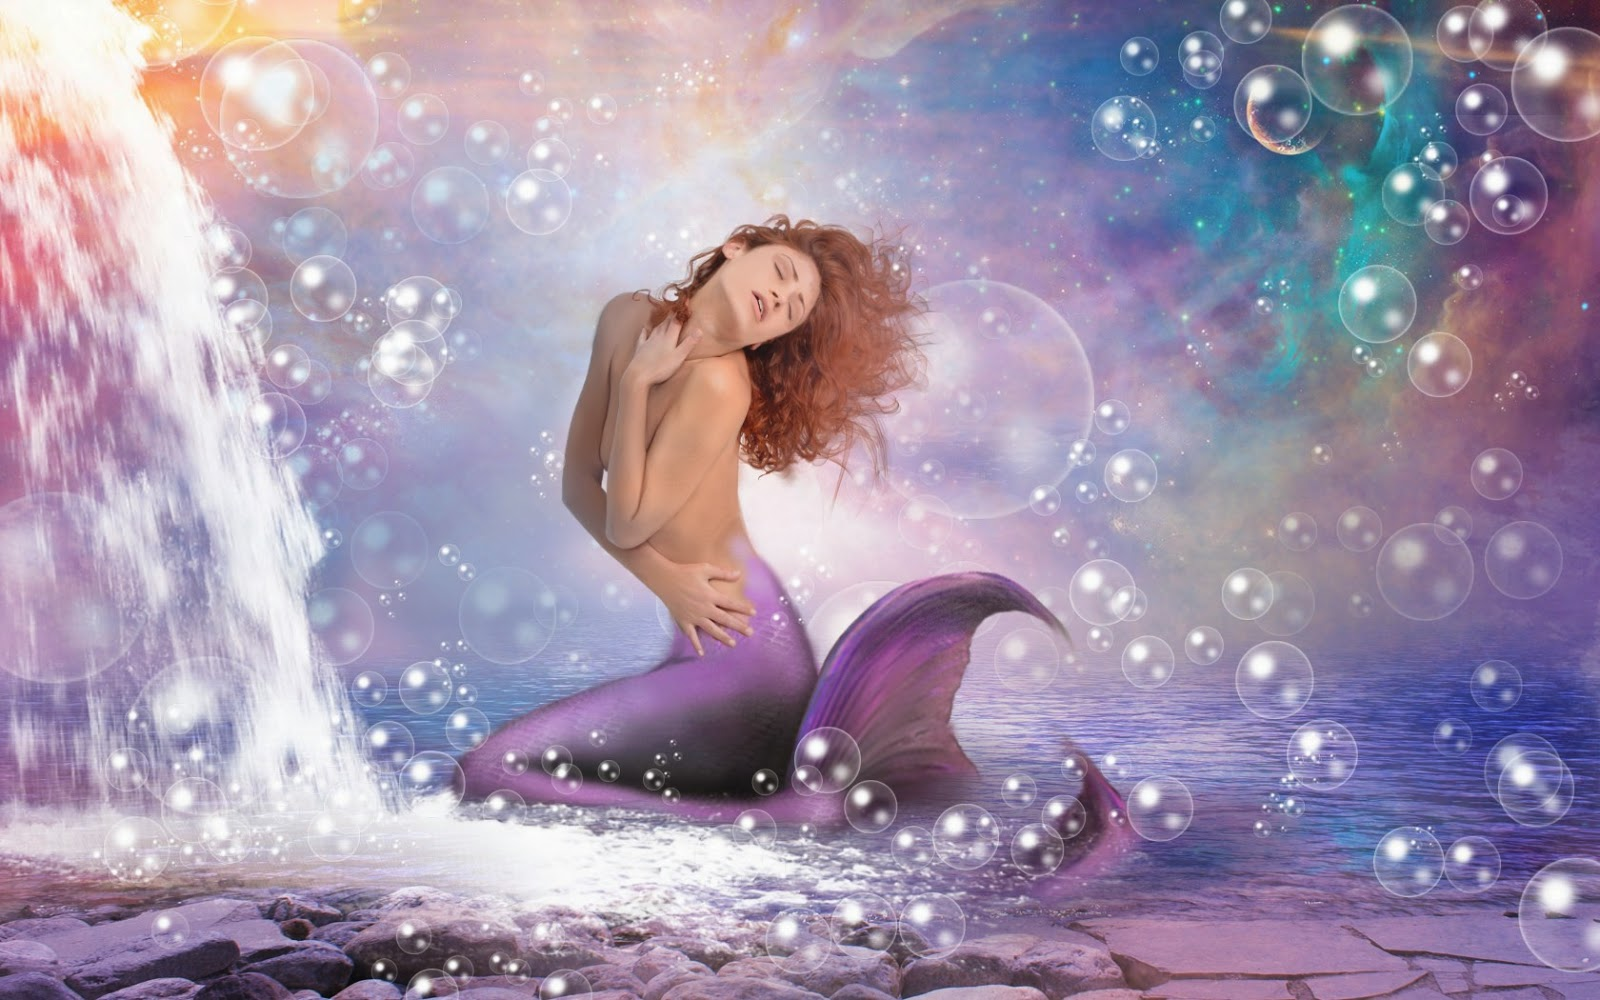 hot-mermaid-top-picture-with-less-bubbles-light-photoshop-design-1680x1050.jpg